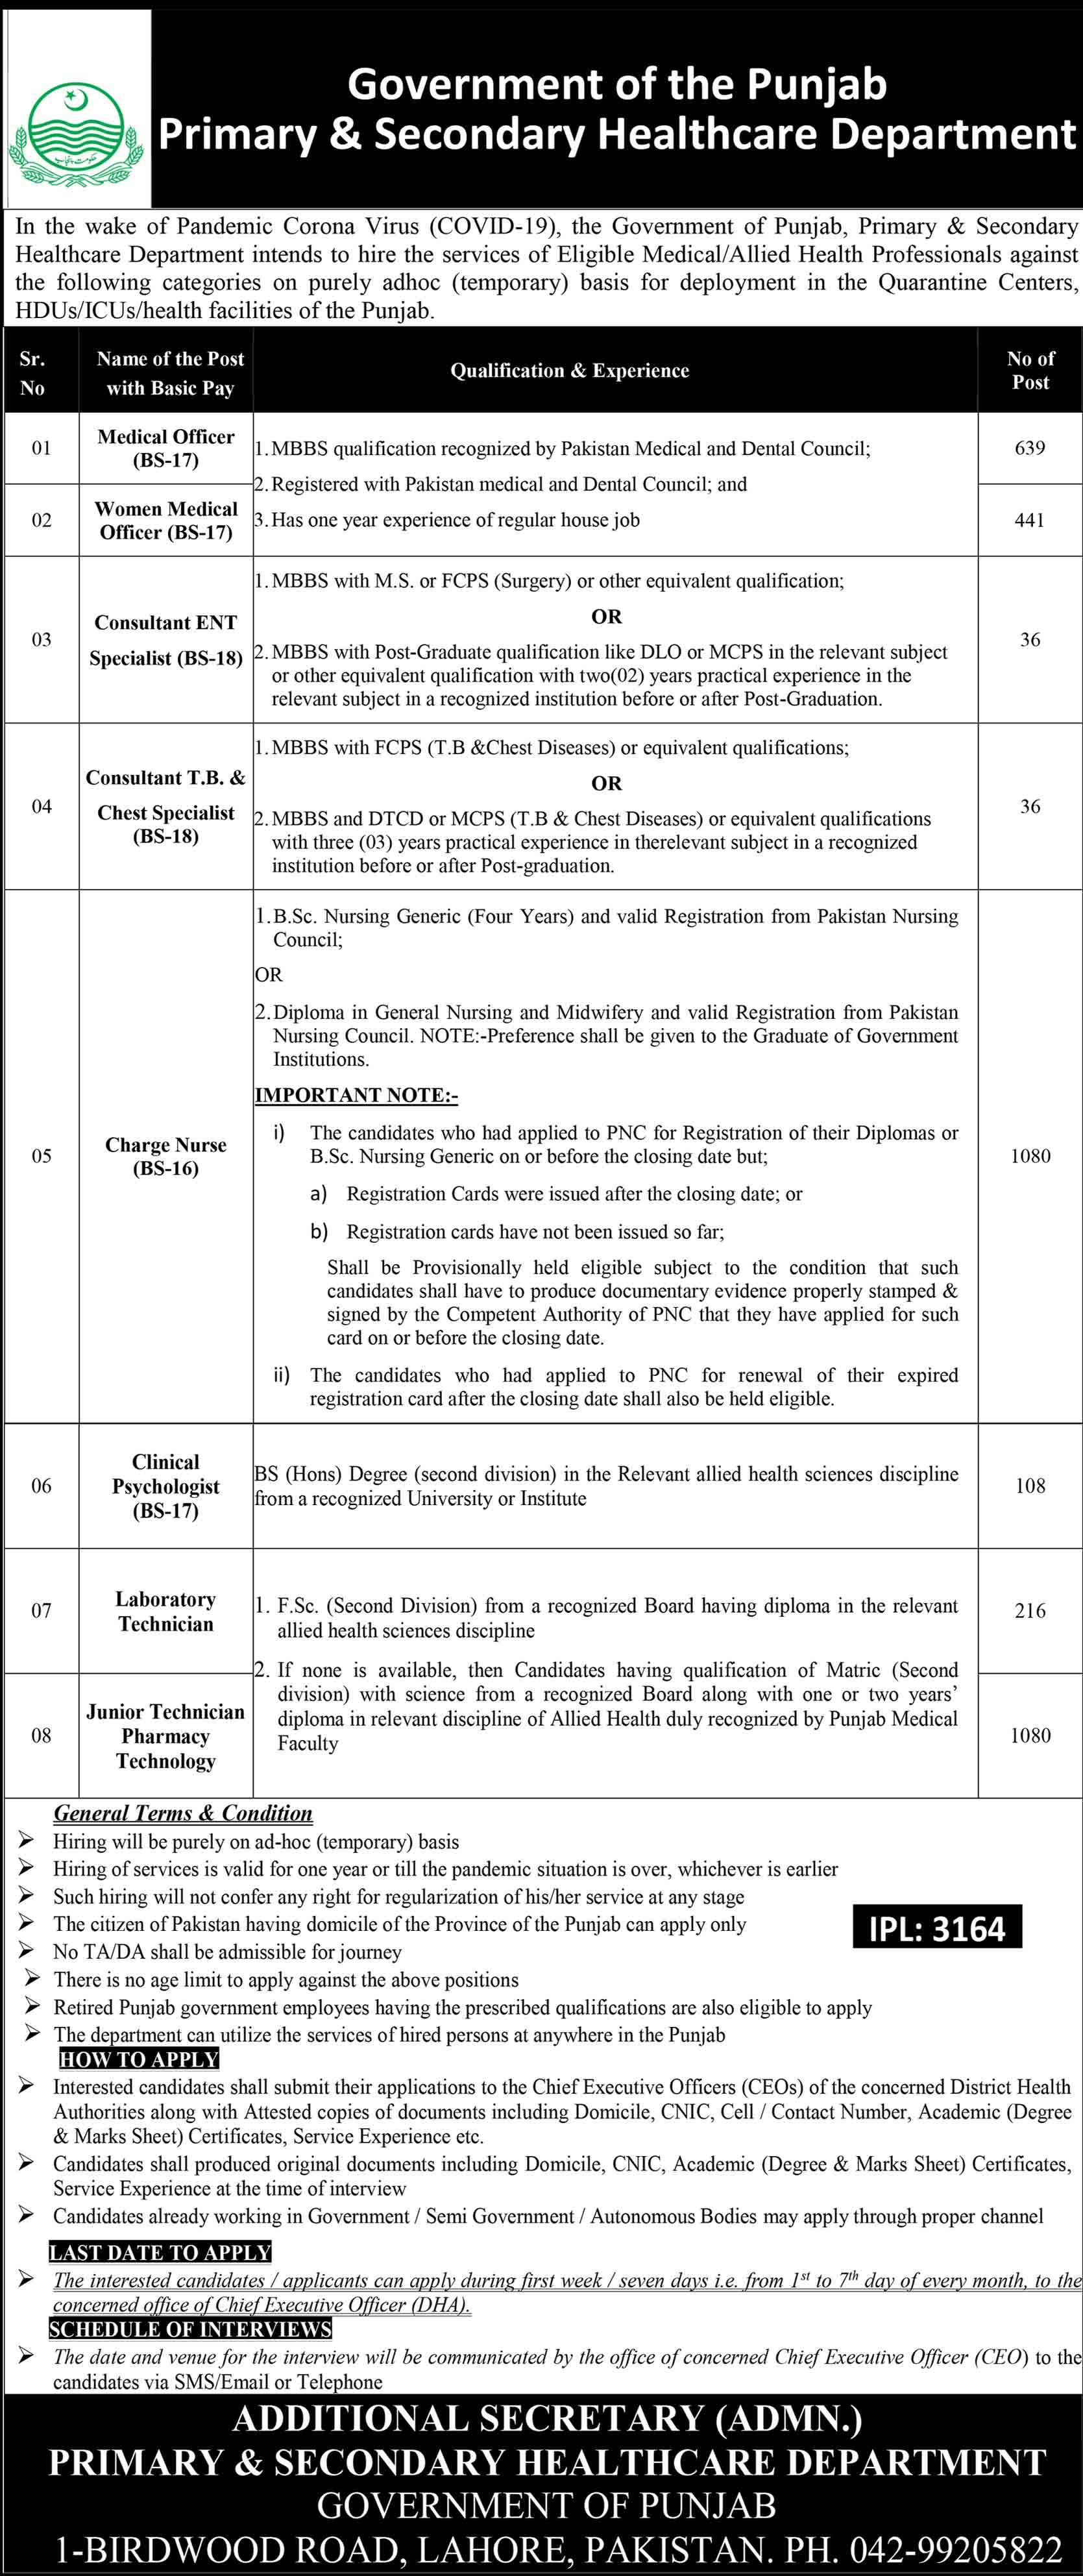 Primary & Secondary Healthcare Department Lahore Jobs 2020 Latest